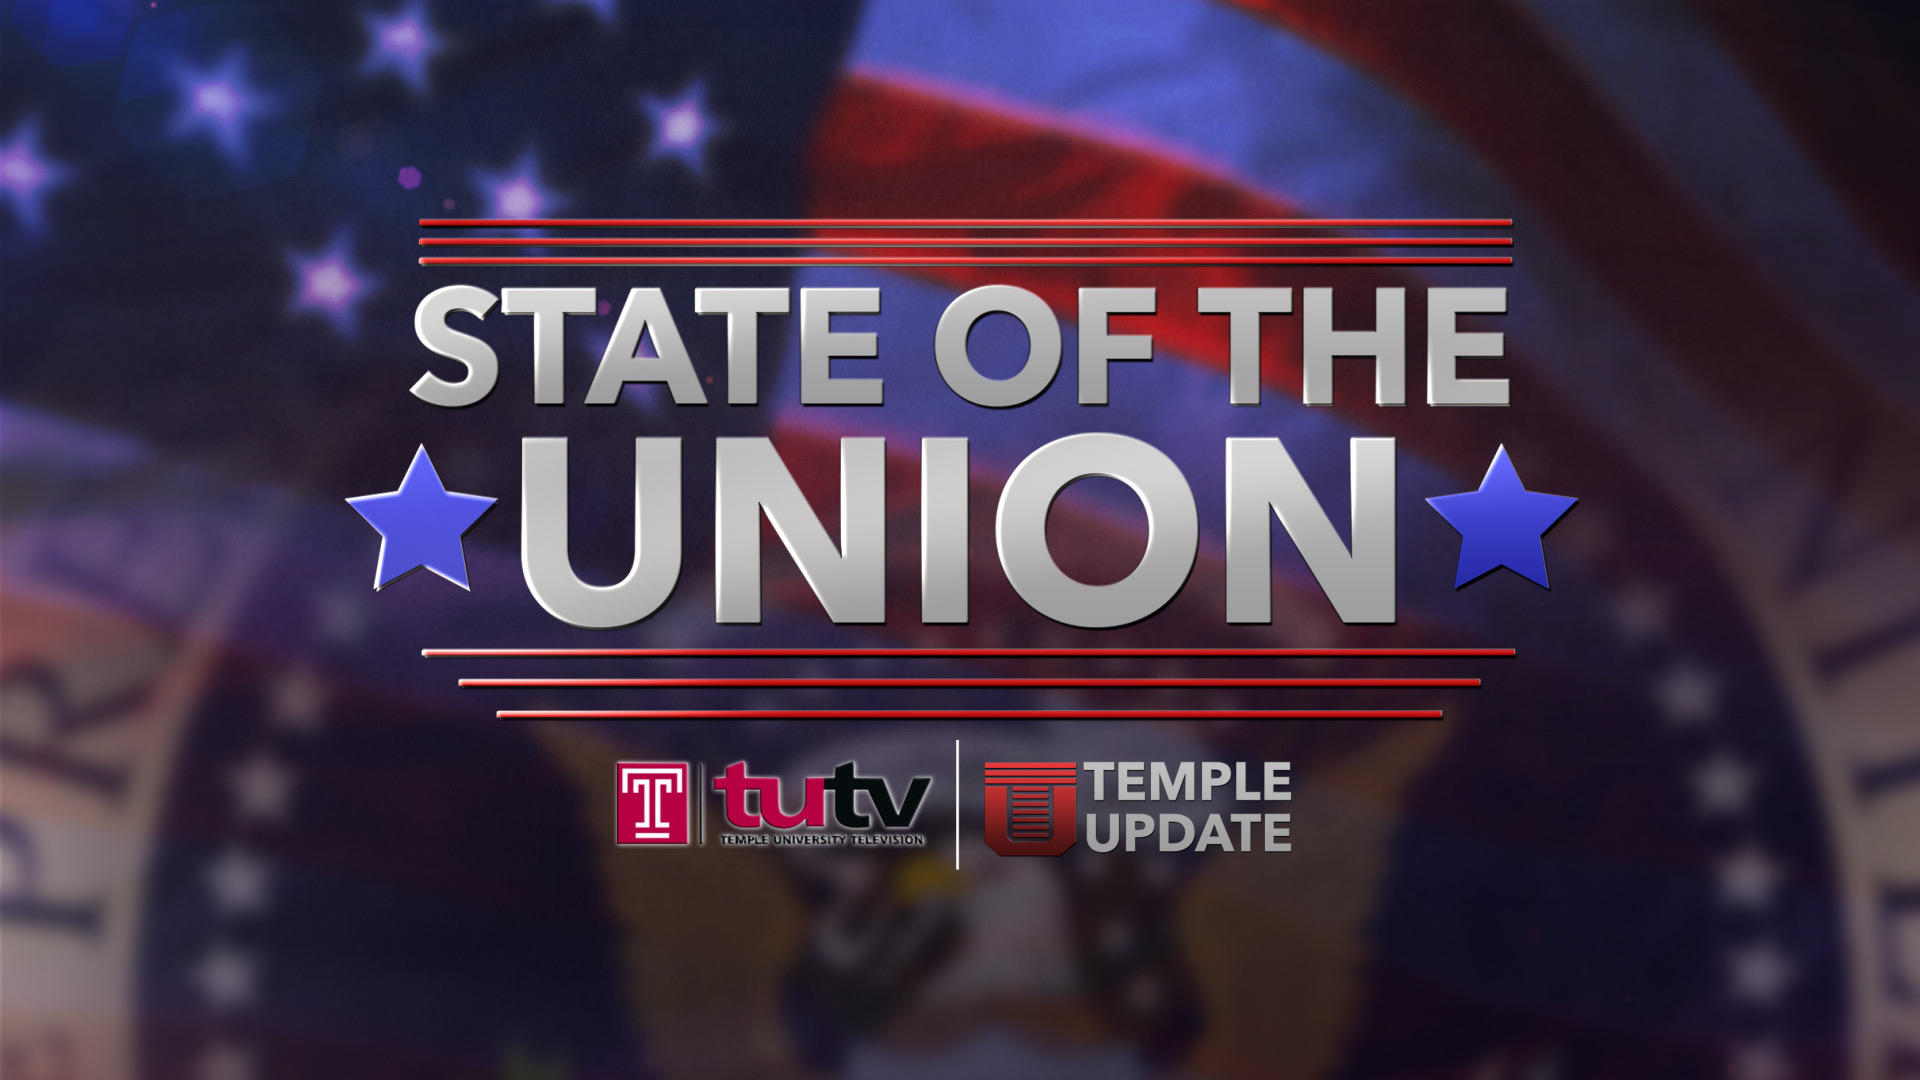 State of the Union Address on Temple Update